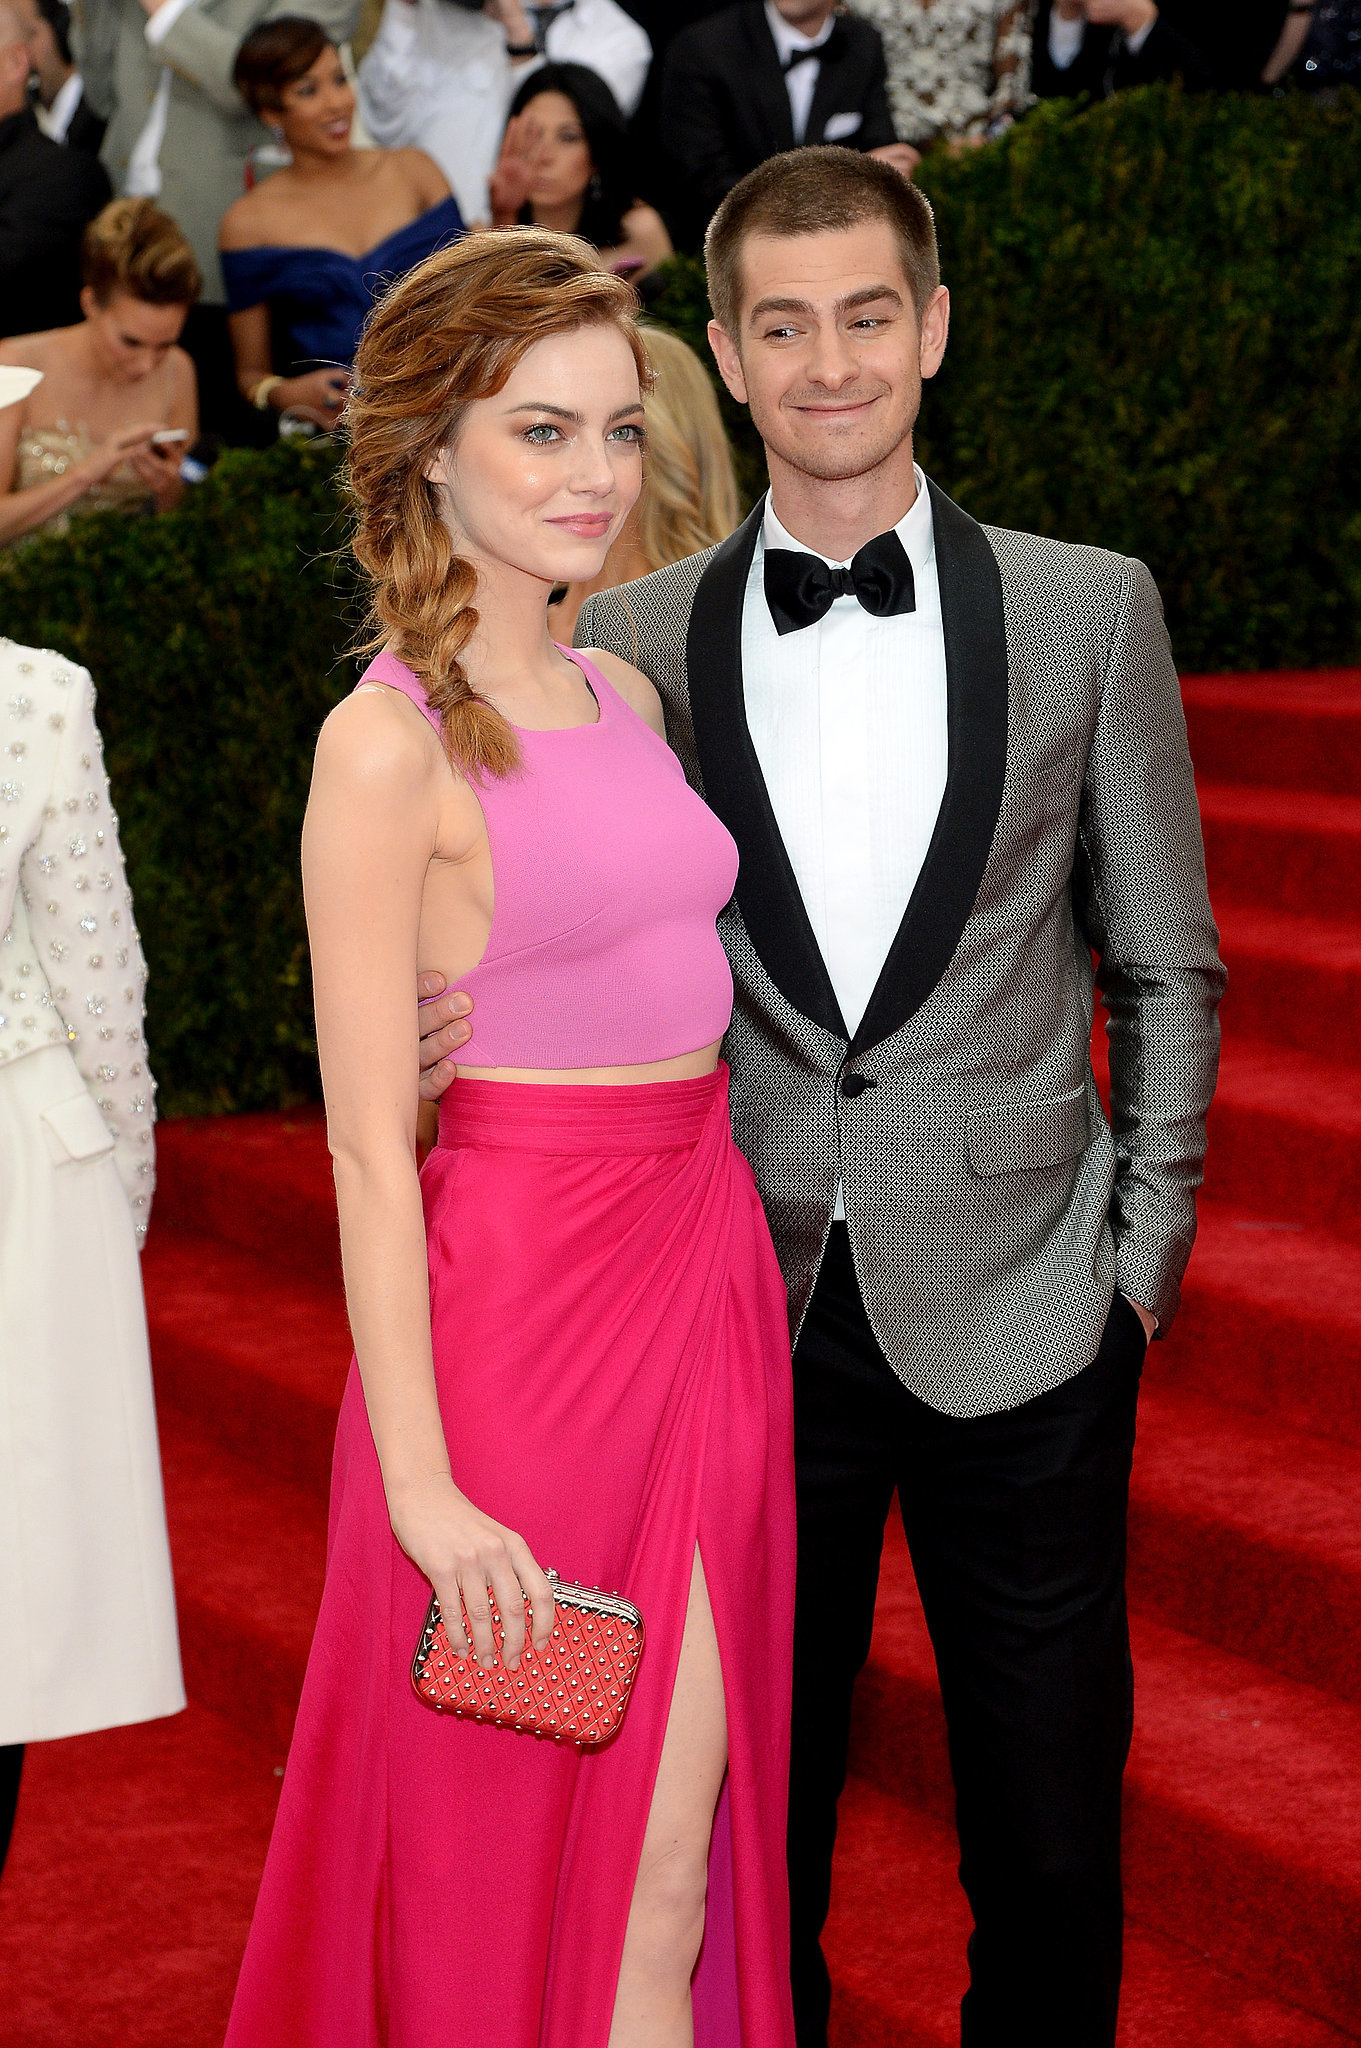 Emma and Andrew Are a Superhero Couple at the Met Gala